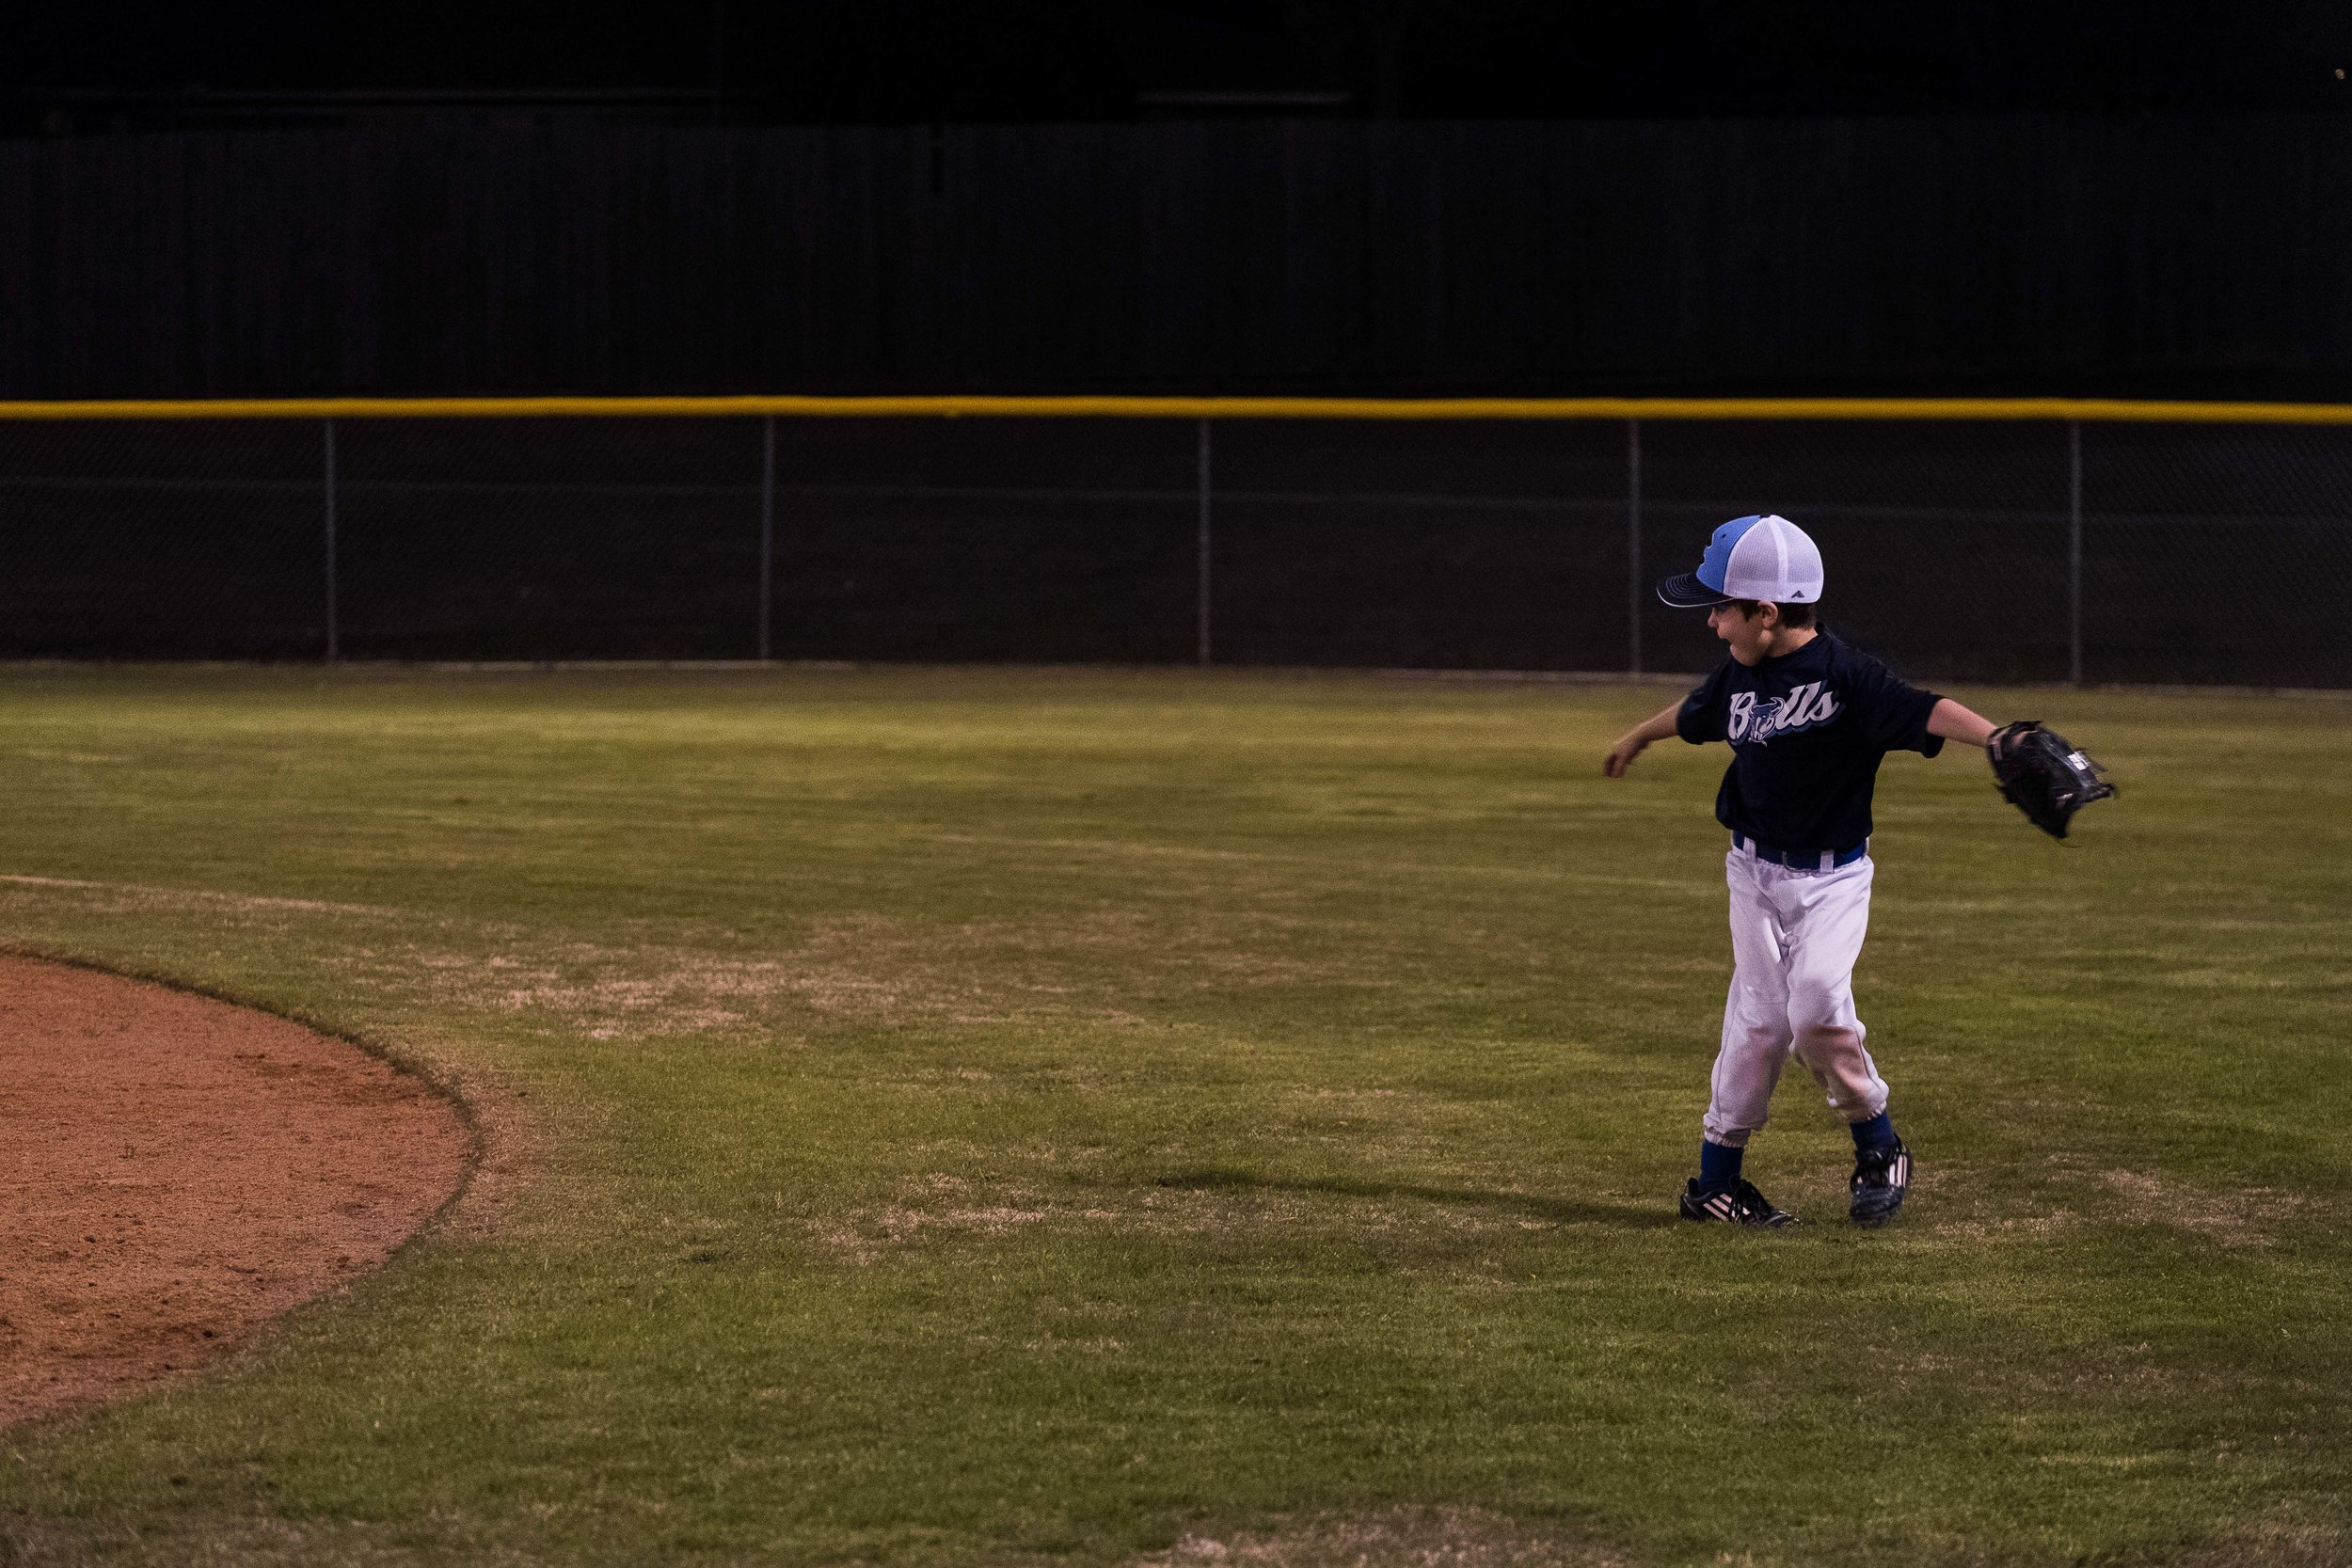 Baseball is back in season and Henry is in hog heaven. Sometimes though, he gets a little distracted in the outfield.